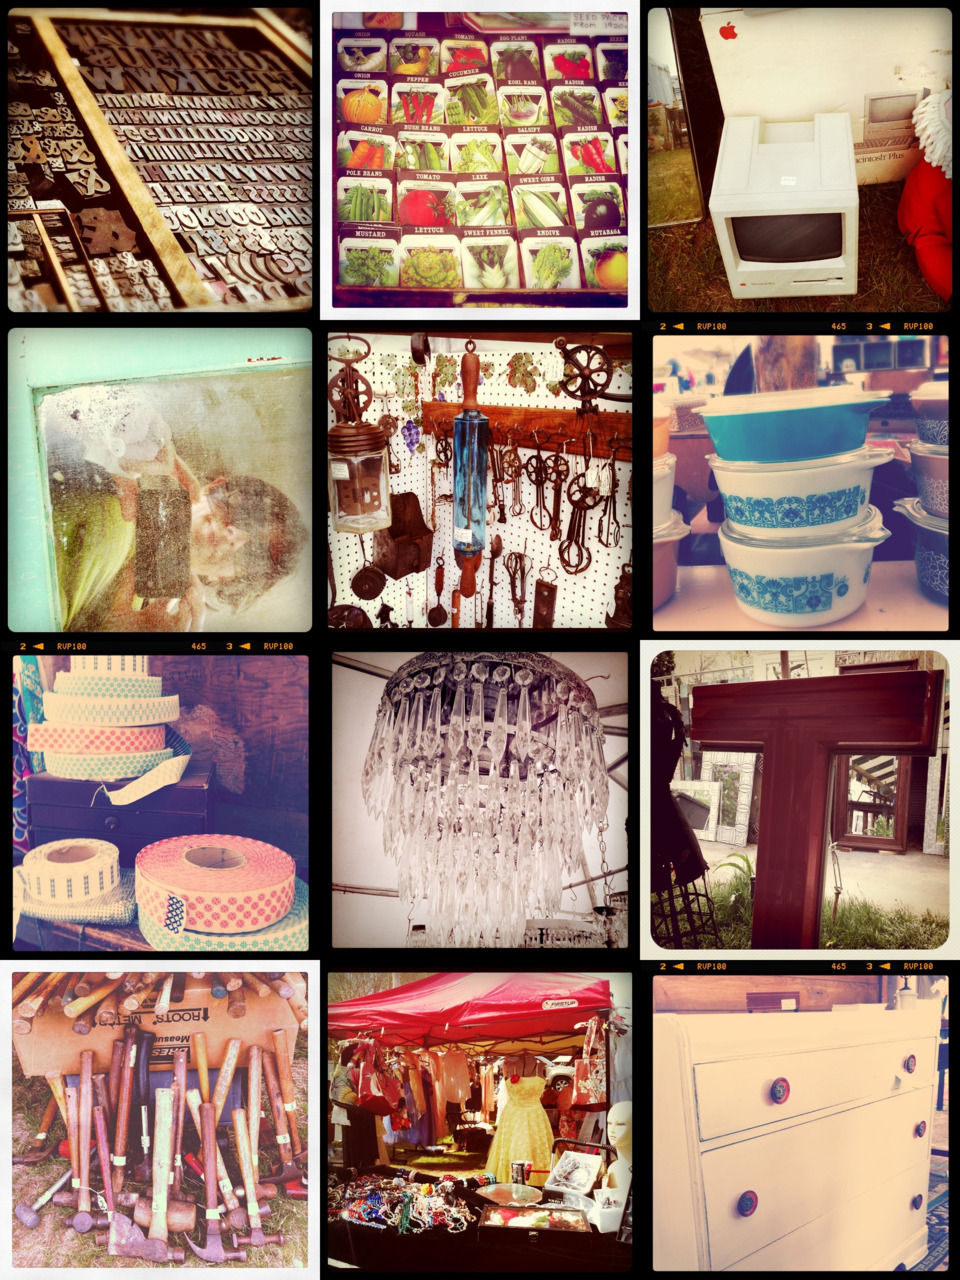 Brimfield Antique Shows , Instagram quick snaps collage   (click for big)